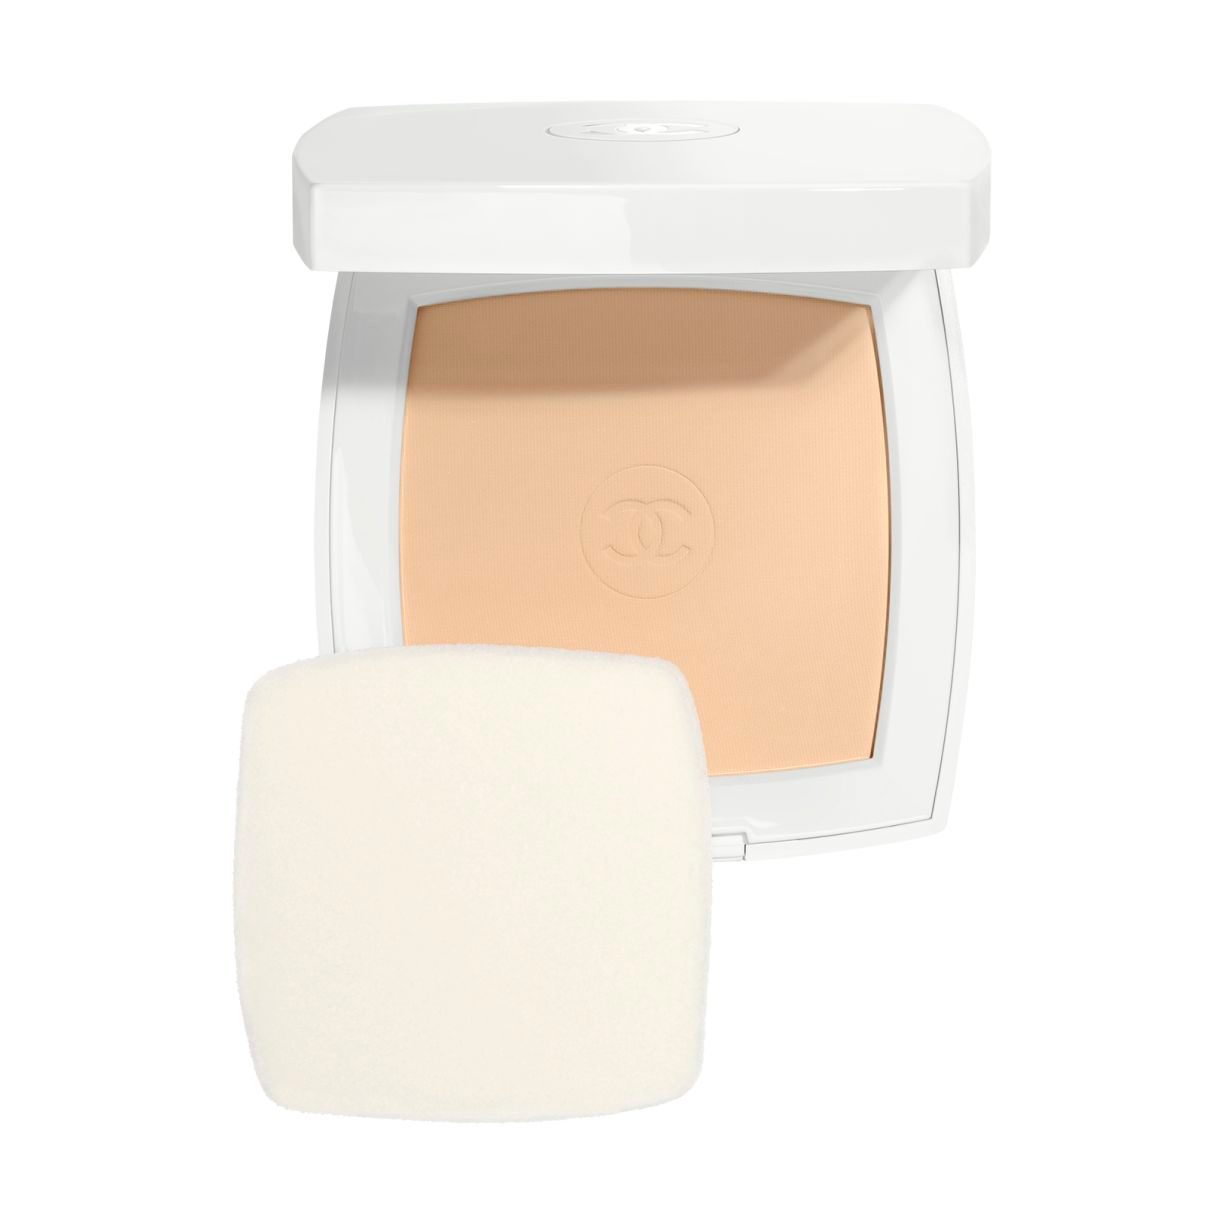 LE BLANC WHITENING COMPACT FOUNDATION LONG LASTING RADIANCE-THERMAL COMFORT SPF 25 / PA+++